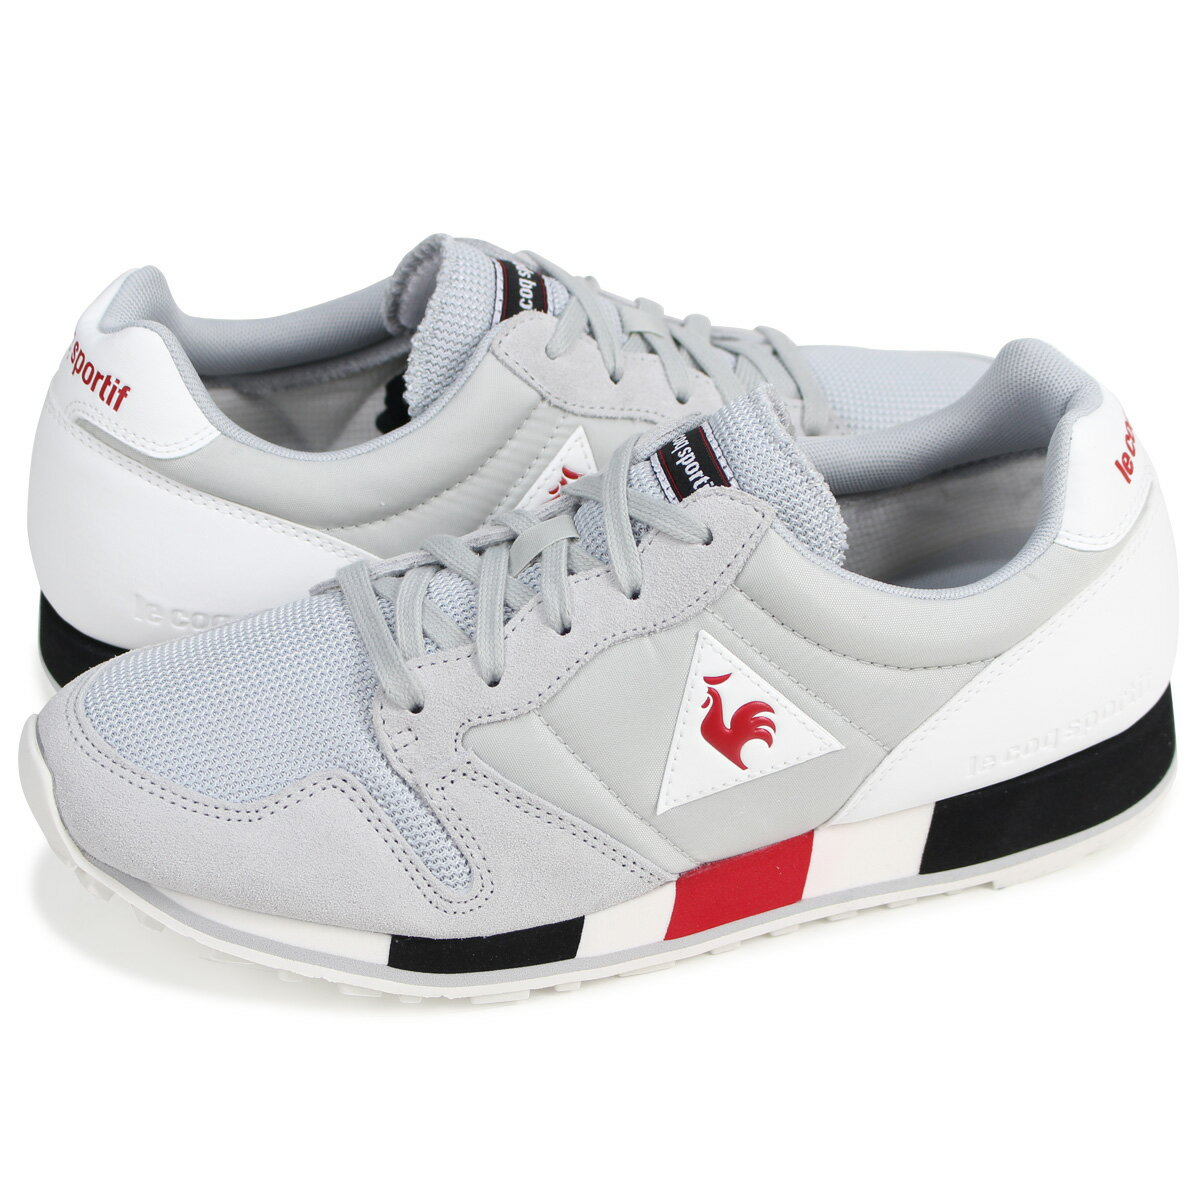 4df54099ef93 Whats up Sports  le coq sportif OMEGA NYLON Le Coq Sportif men ...